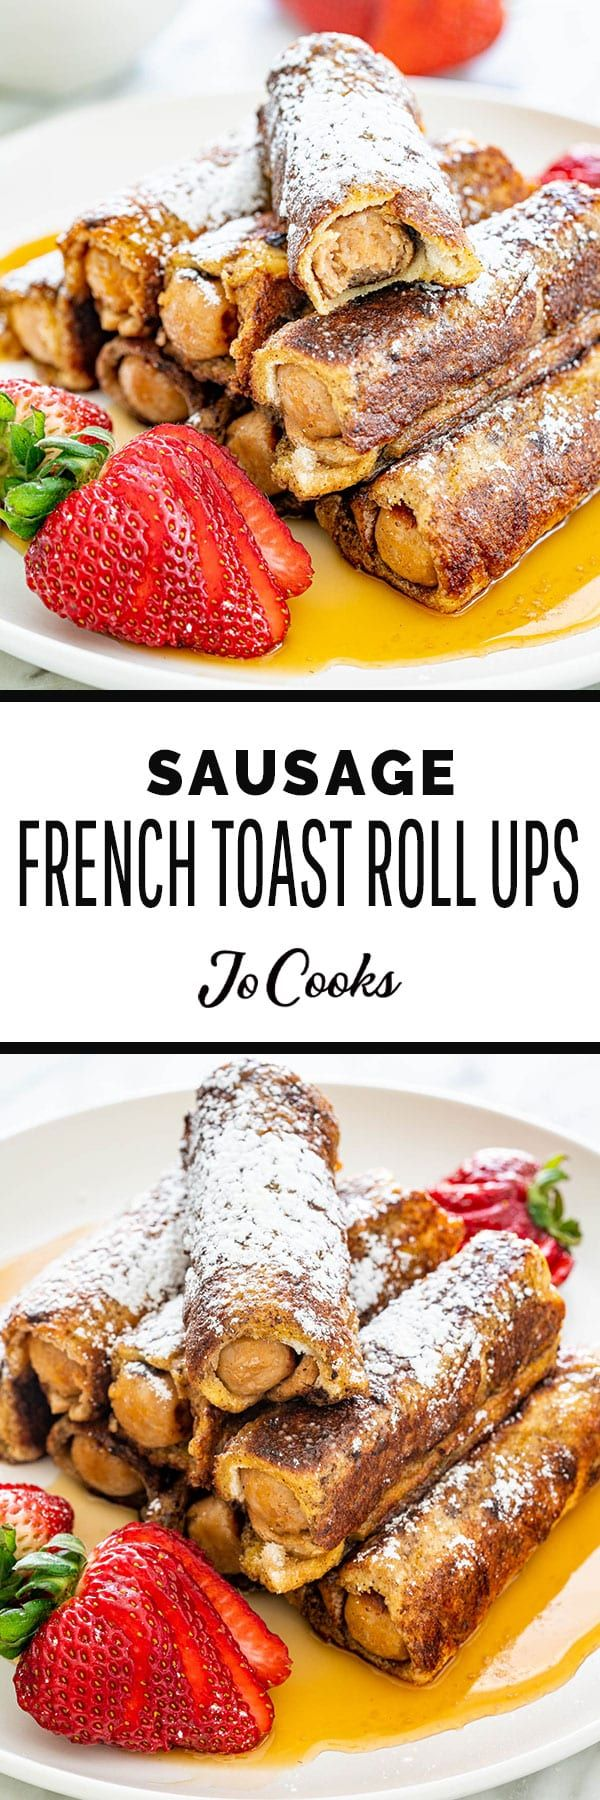 Sausage French Toast Roll Ups #frenchtoastrollups